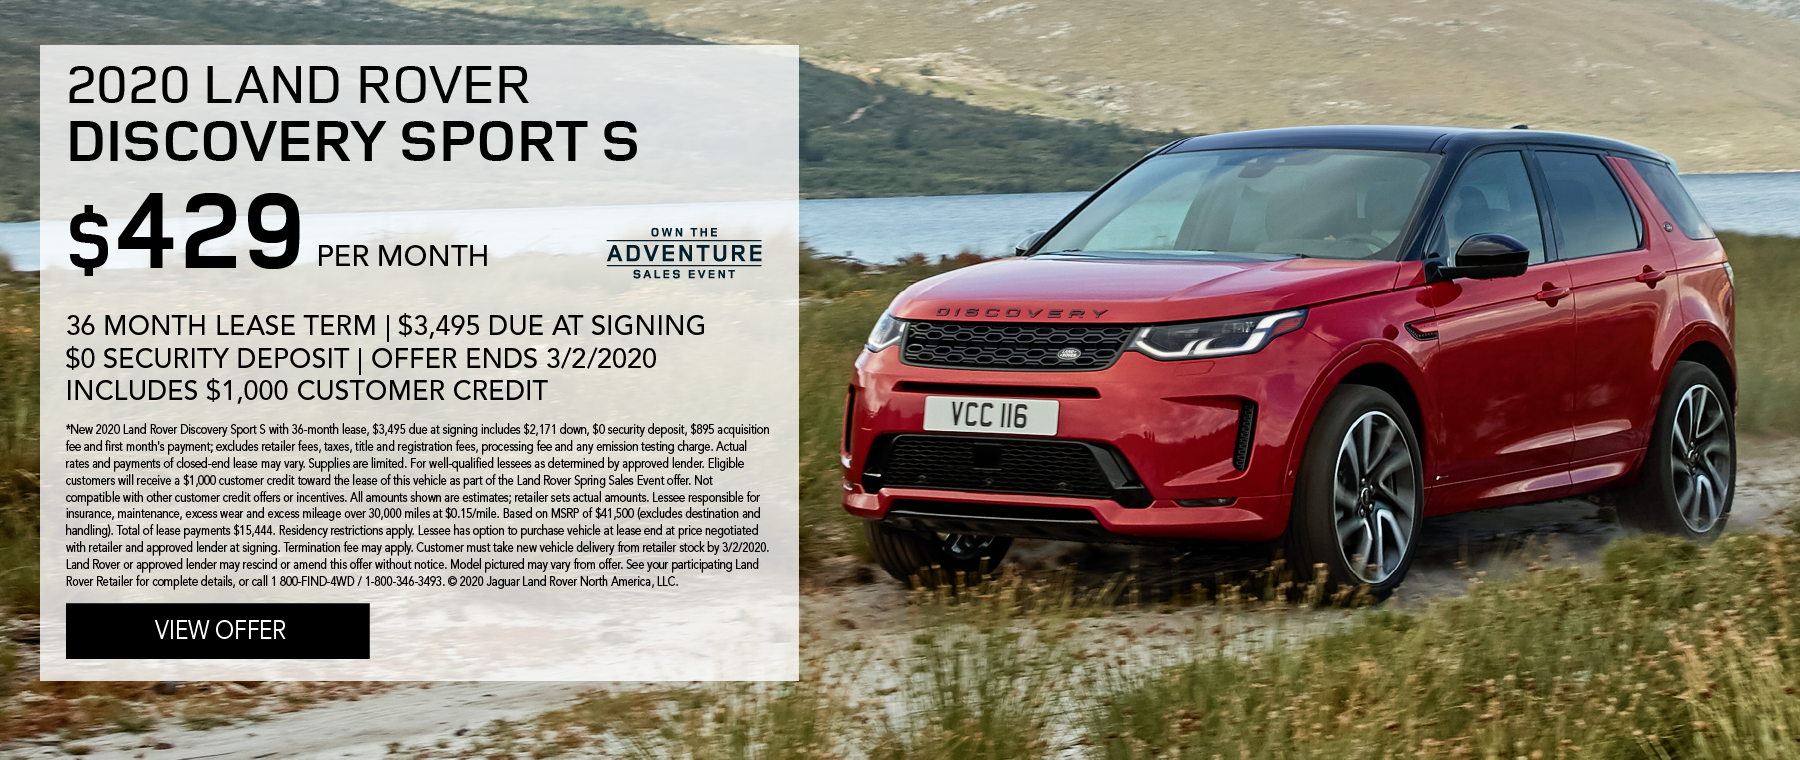 2020 LAND ROVER DISCOVERY SPORT S PARKED ON GRAVEL AND GRASSY TERRAIN WITH WATER IN BACKGROUND. $429 PER MONTH. 36 MONTH LEASE TERM. $3,495 CASH DUE AT SIGNING. INCLUDES $1,000 CUSTOMER CREDIT. $0 SECURITY DEPOSIT. 10,000 MILES PER YEAR. OFFER ENDS 3/2/2020. OWN THE ADVENTURE SALES EVENT.